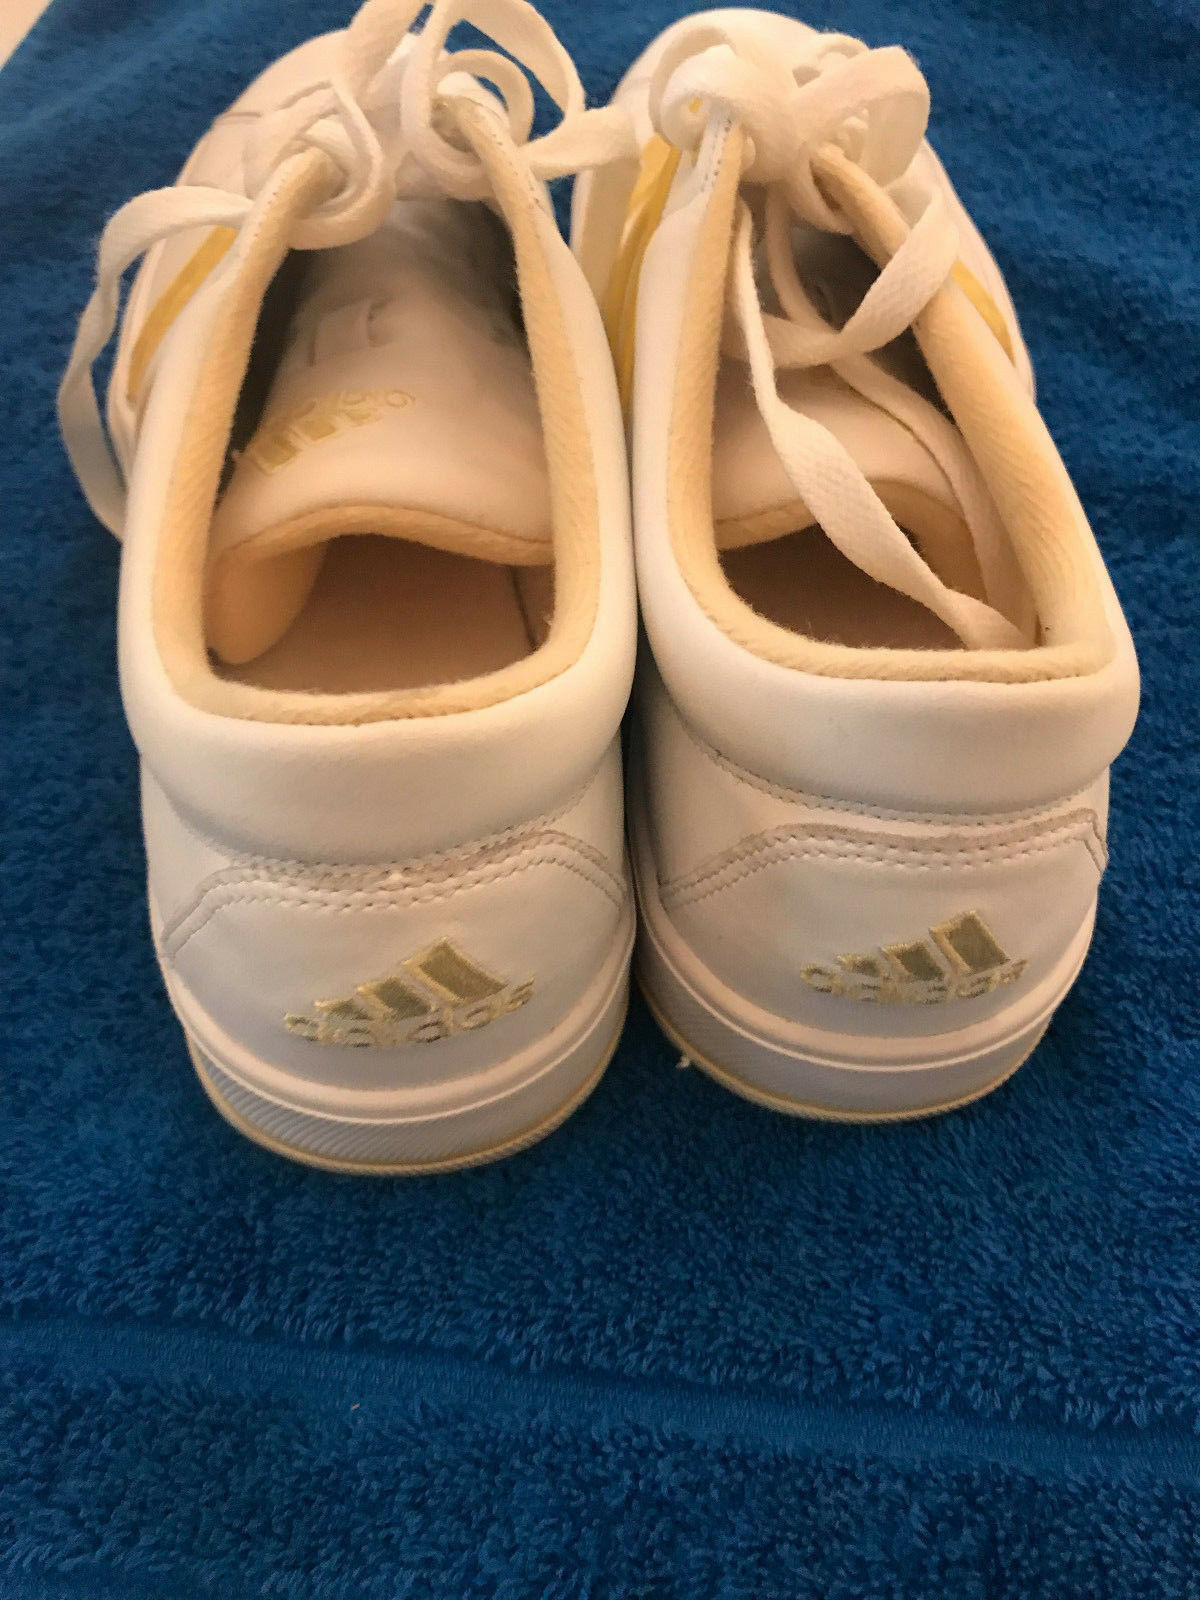 Adidas Women's Equilibrium Equilibrium Equilibrium Leather w Yellow Stripe shoes, Size 11 59b07d